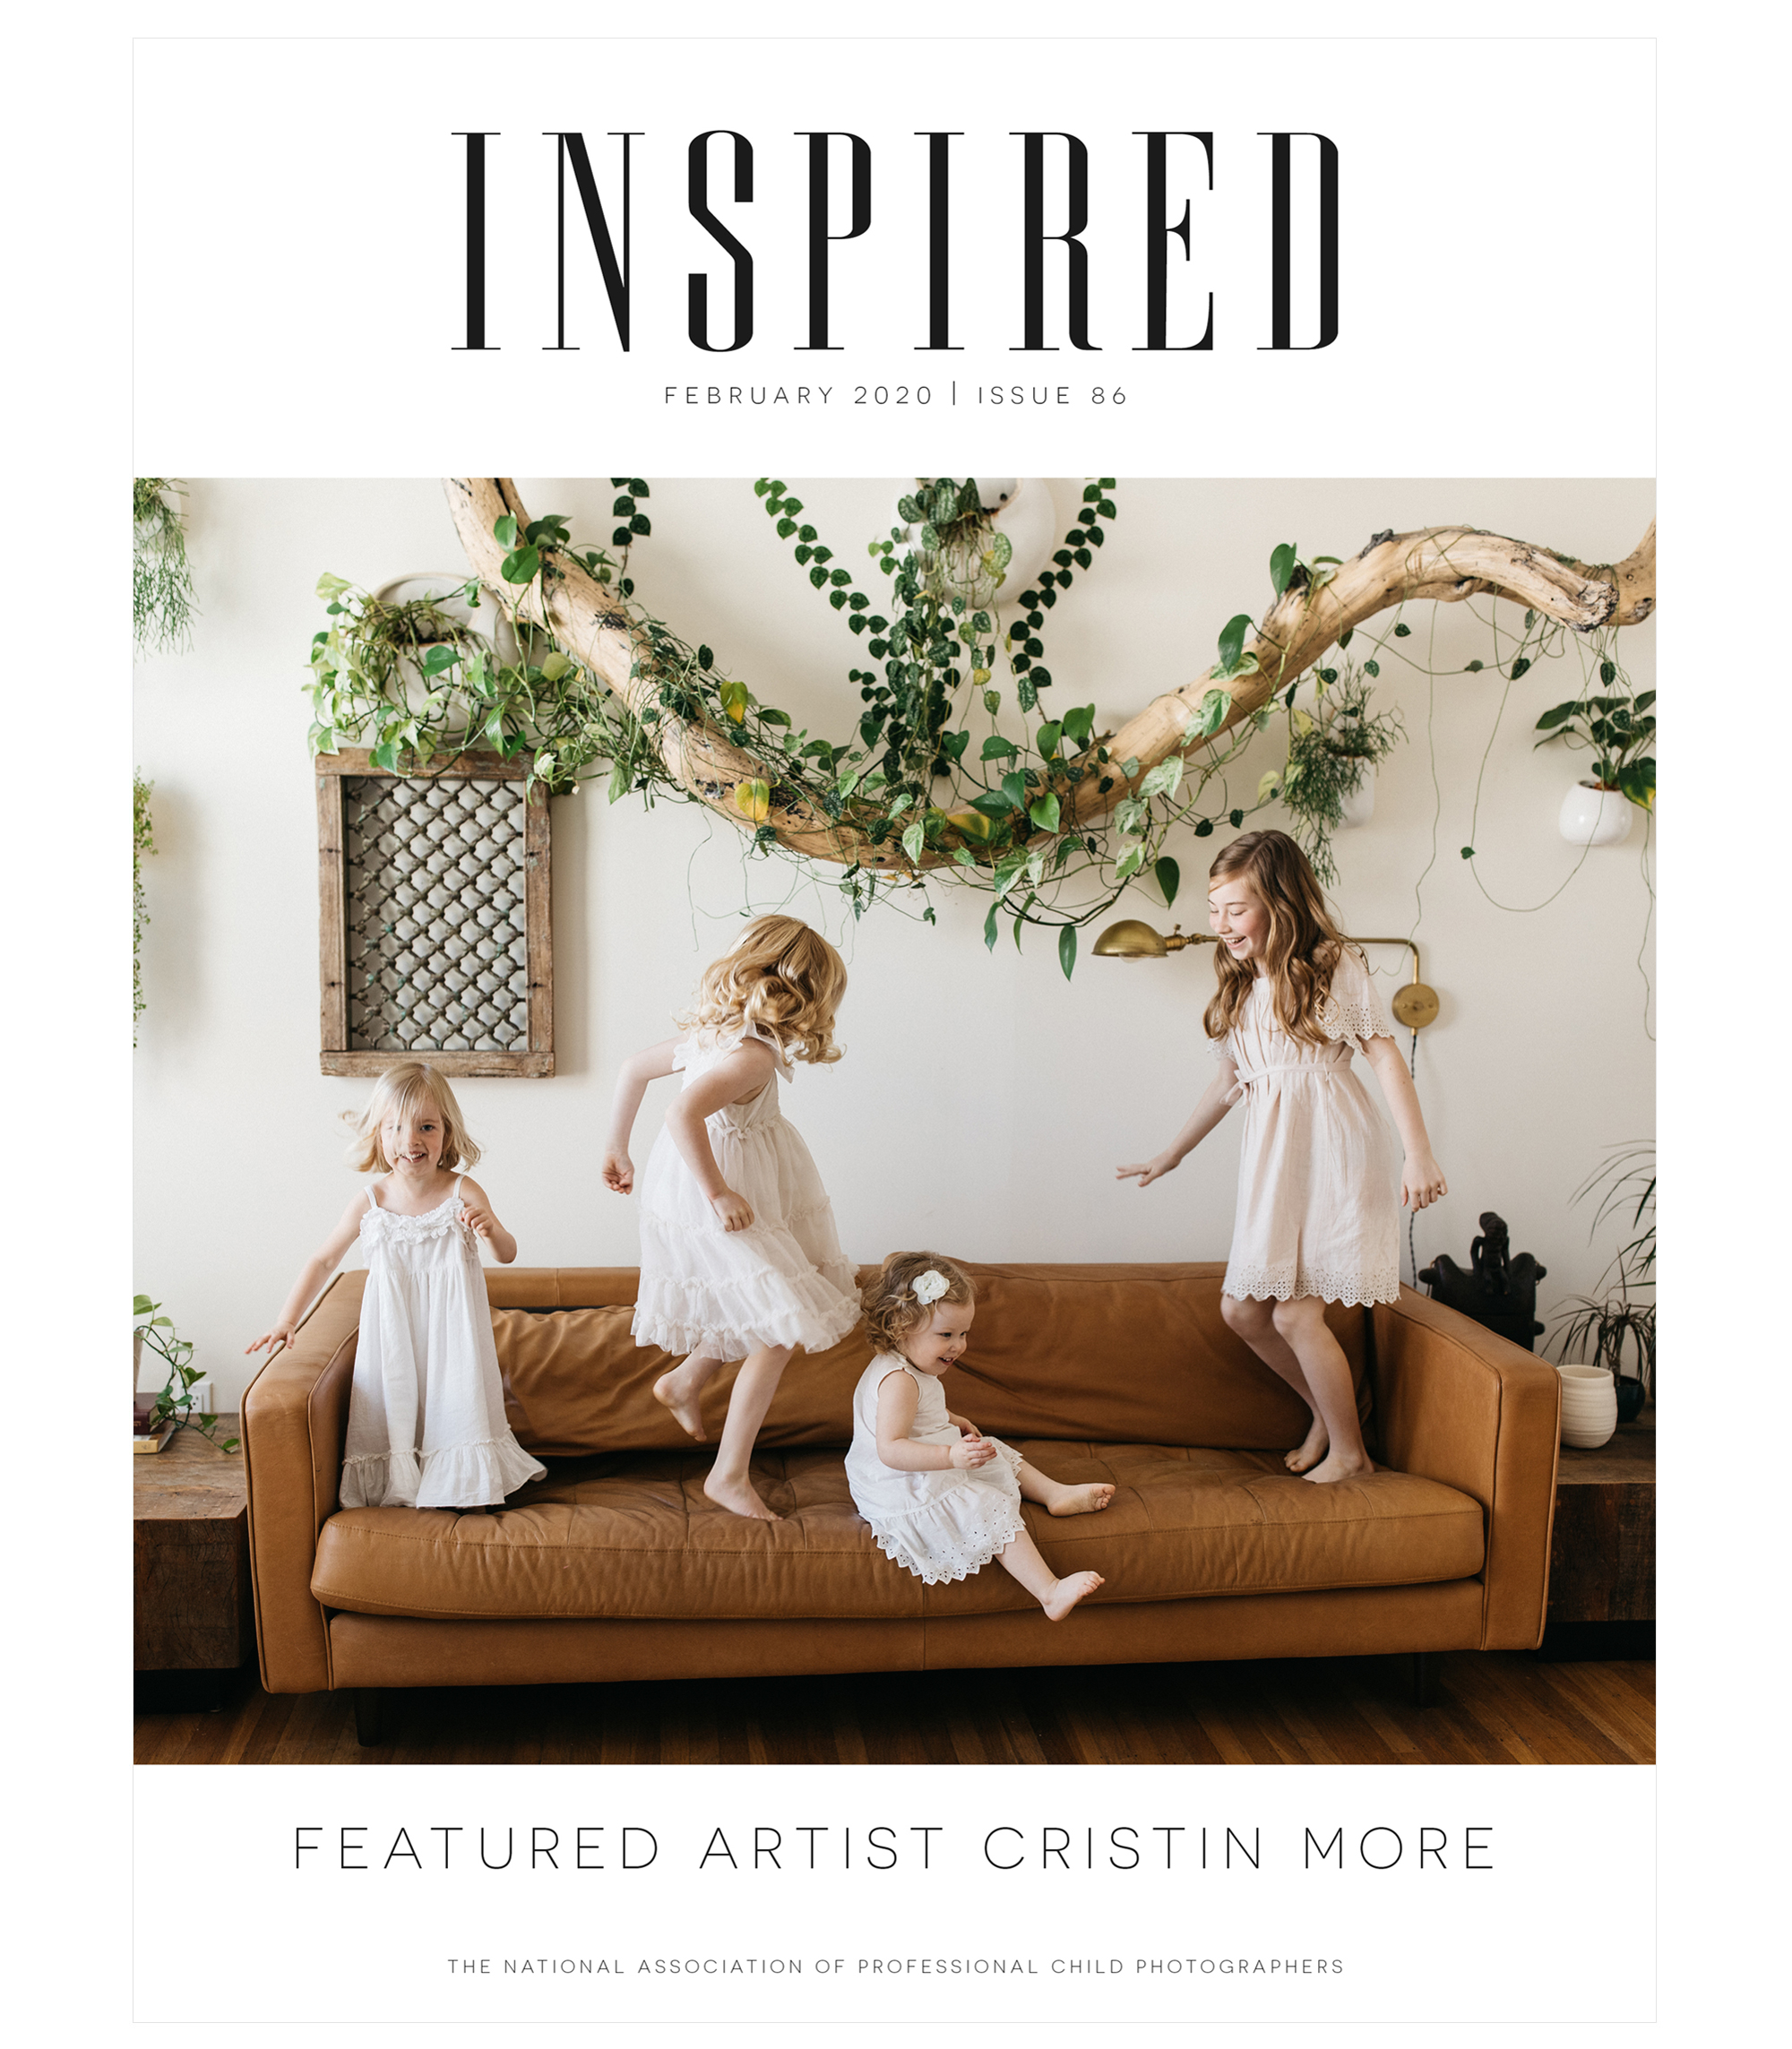 Inspired, February 2020, Featured Artist Cristin More, The National Association of Professional Child Photographers